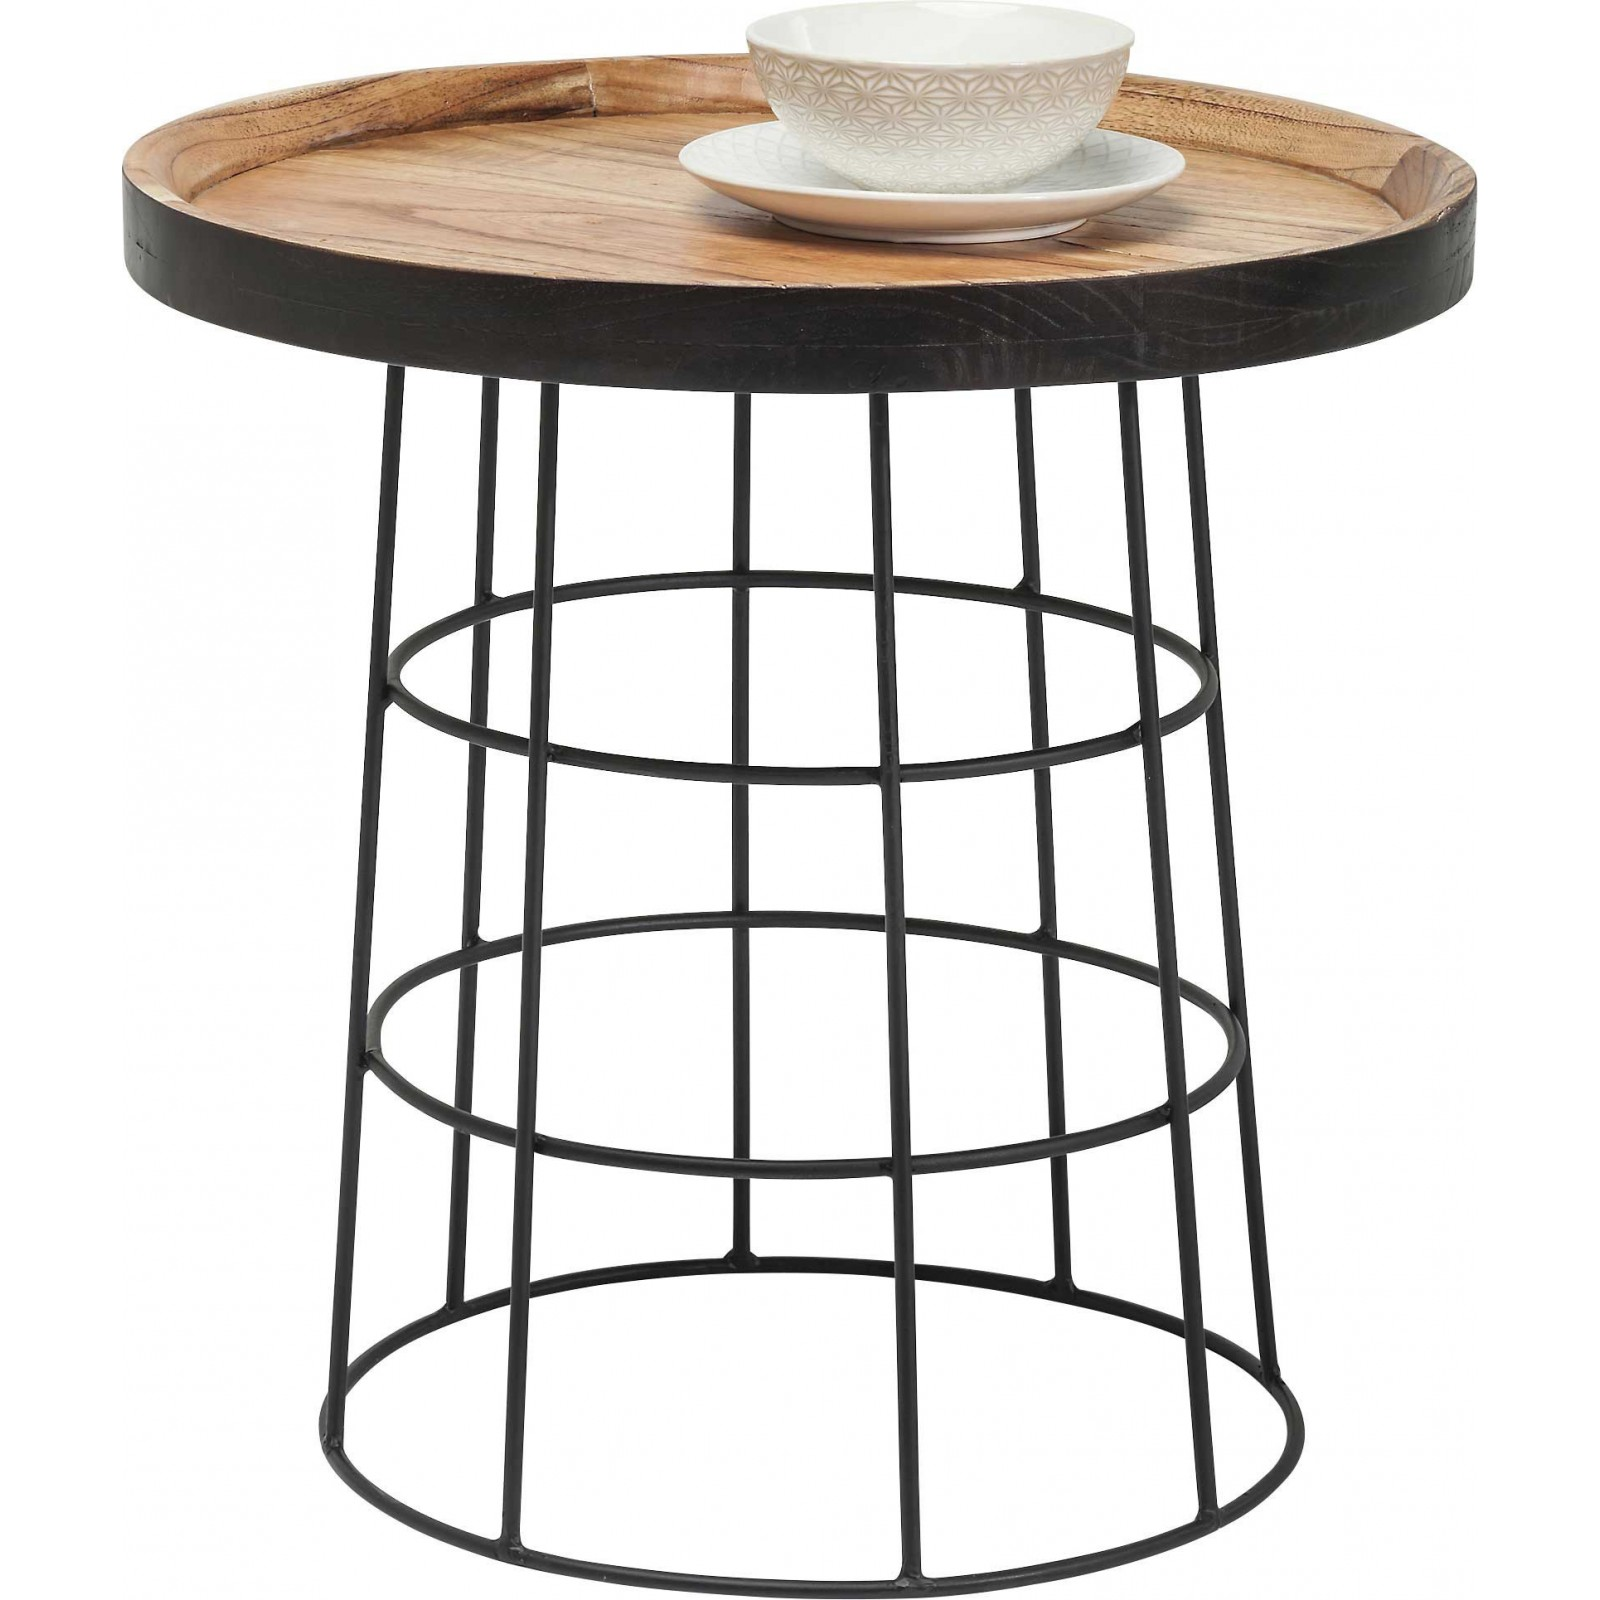 Table d 39 appoint country life 53 cm kare design - Tables d appoint design ...